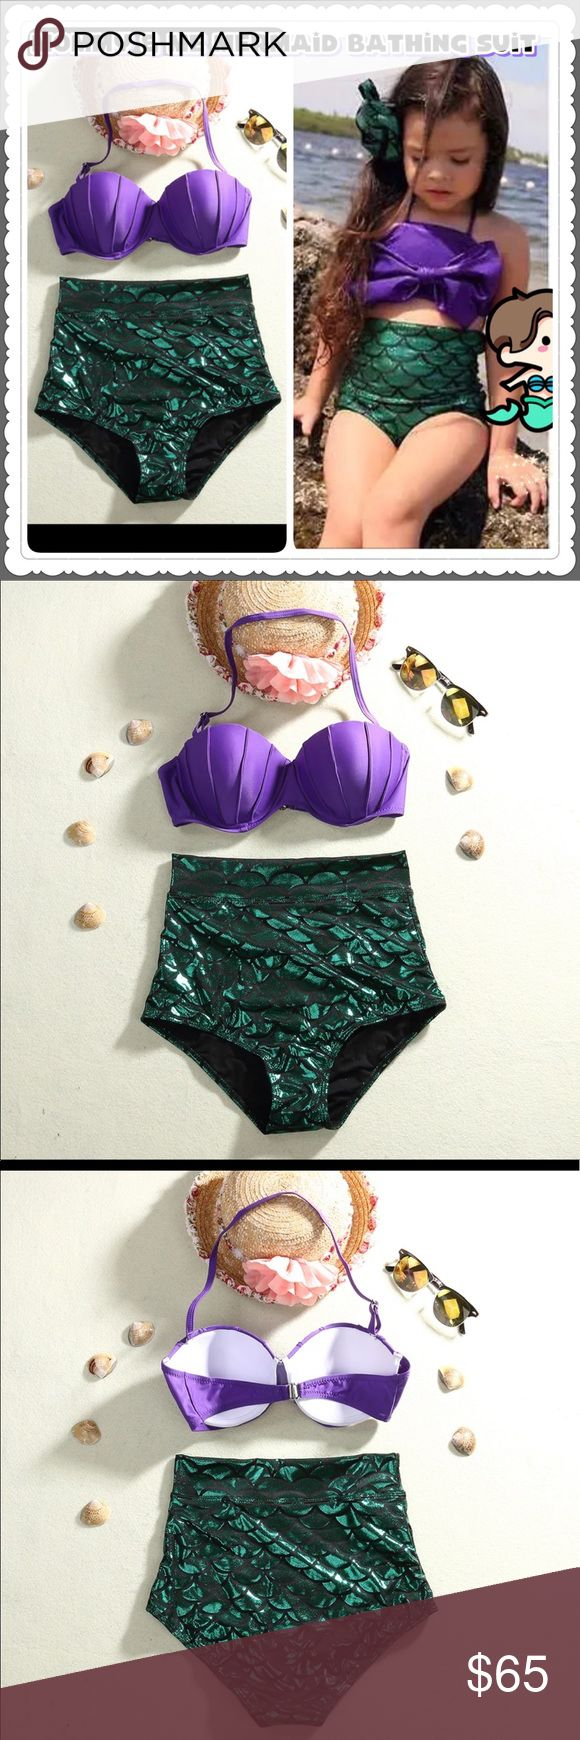 Mommy and me outfit mermaid bathing suit, bikini Mommy and me outfit matching color mermaid bathing suit. Mermaid bikini, mermaid swimsuit. BRAND NEW All size available for kids from 2T - age 14. Mommy bathing suit size S - L available. Limited stock !! This summer splash splash sparkle sparkle and fulfill your little girls mermaid princess dream together ! Swim Bikinis